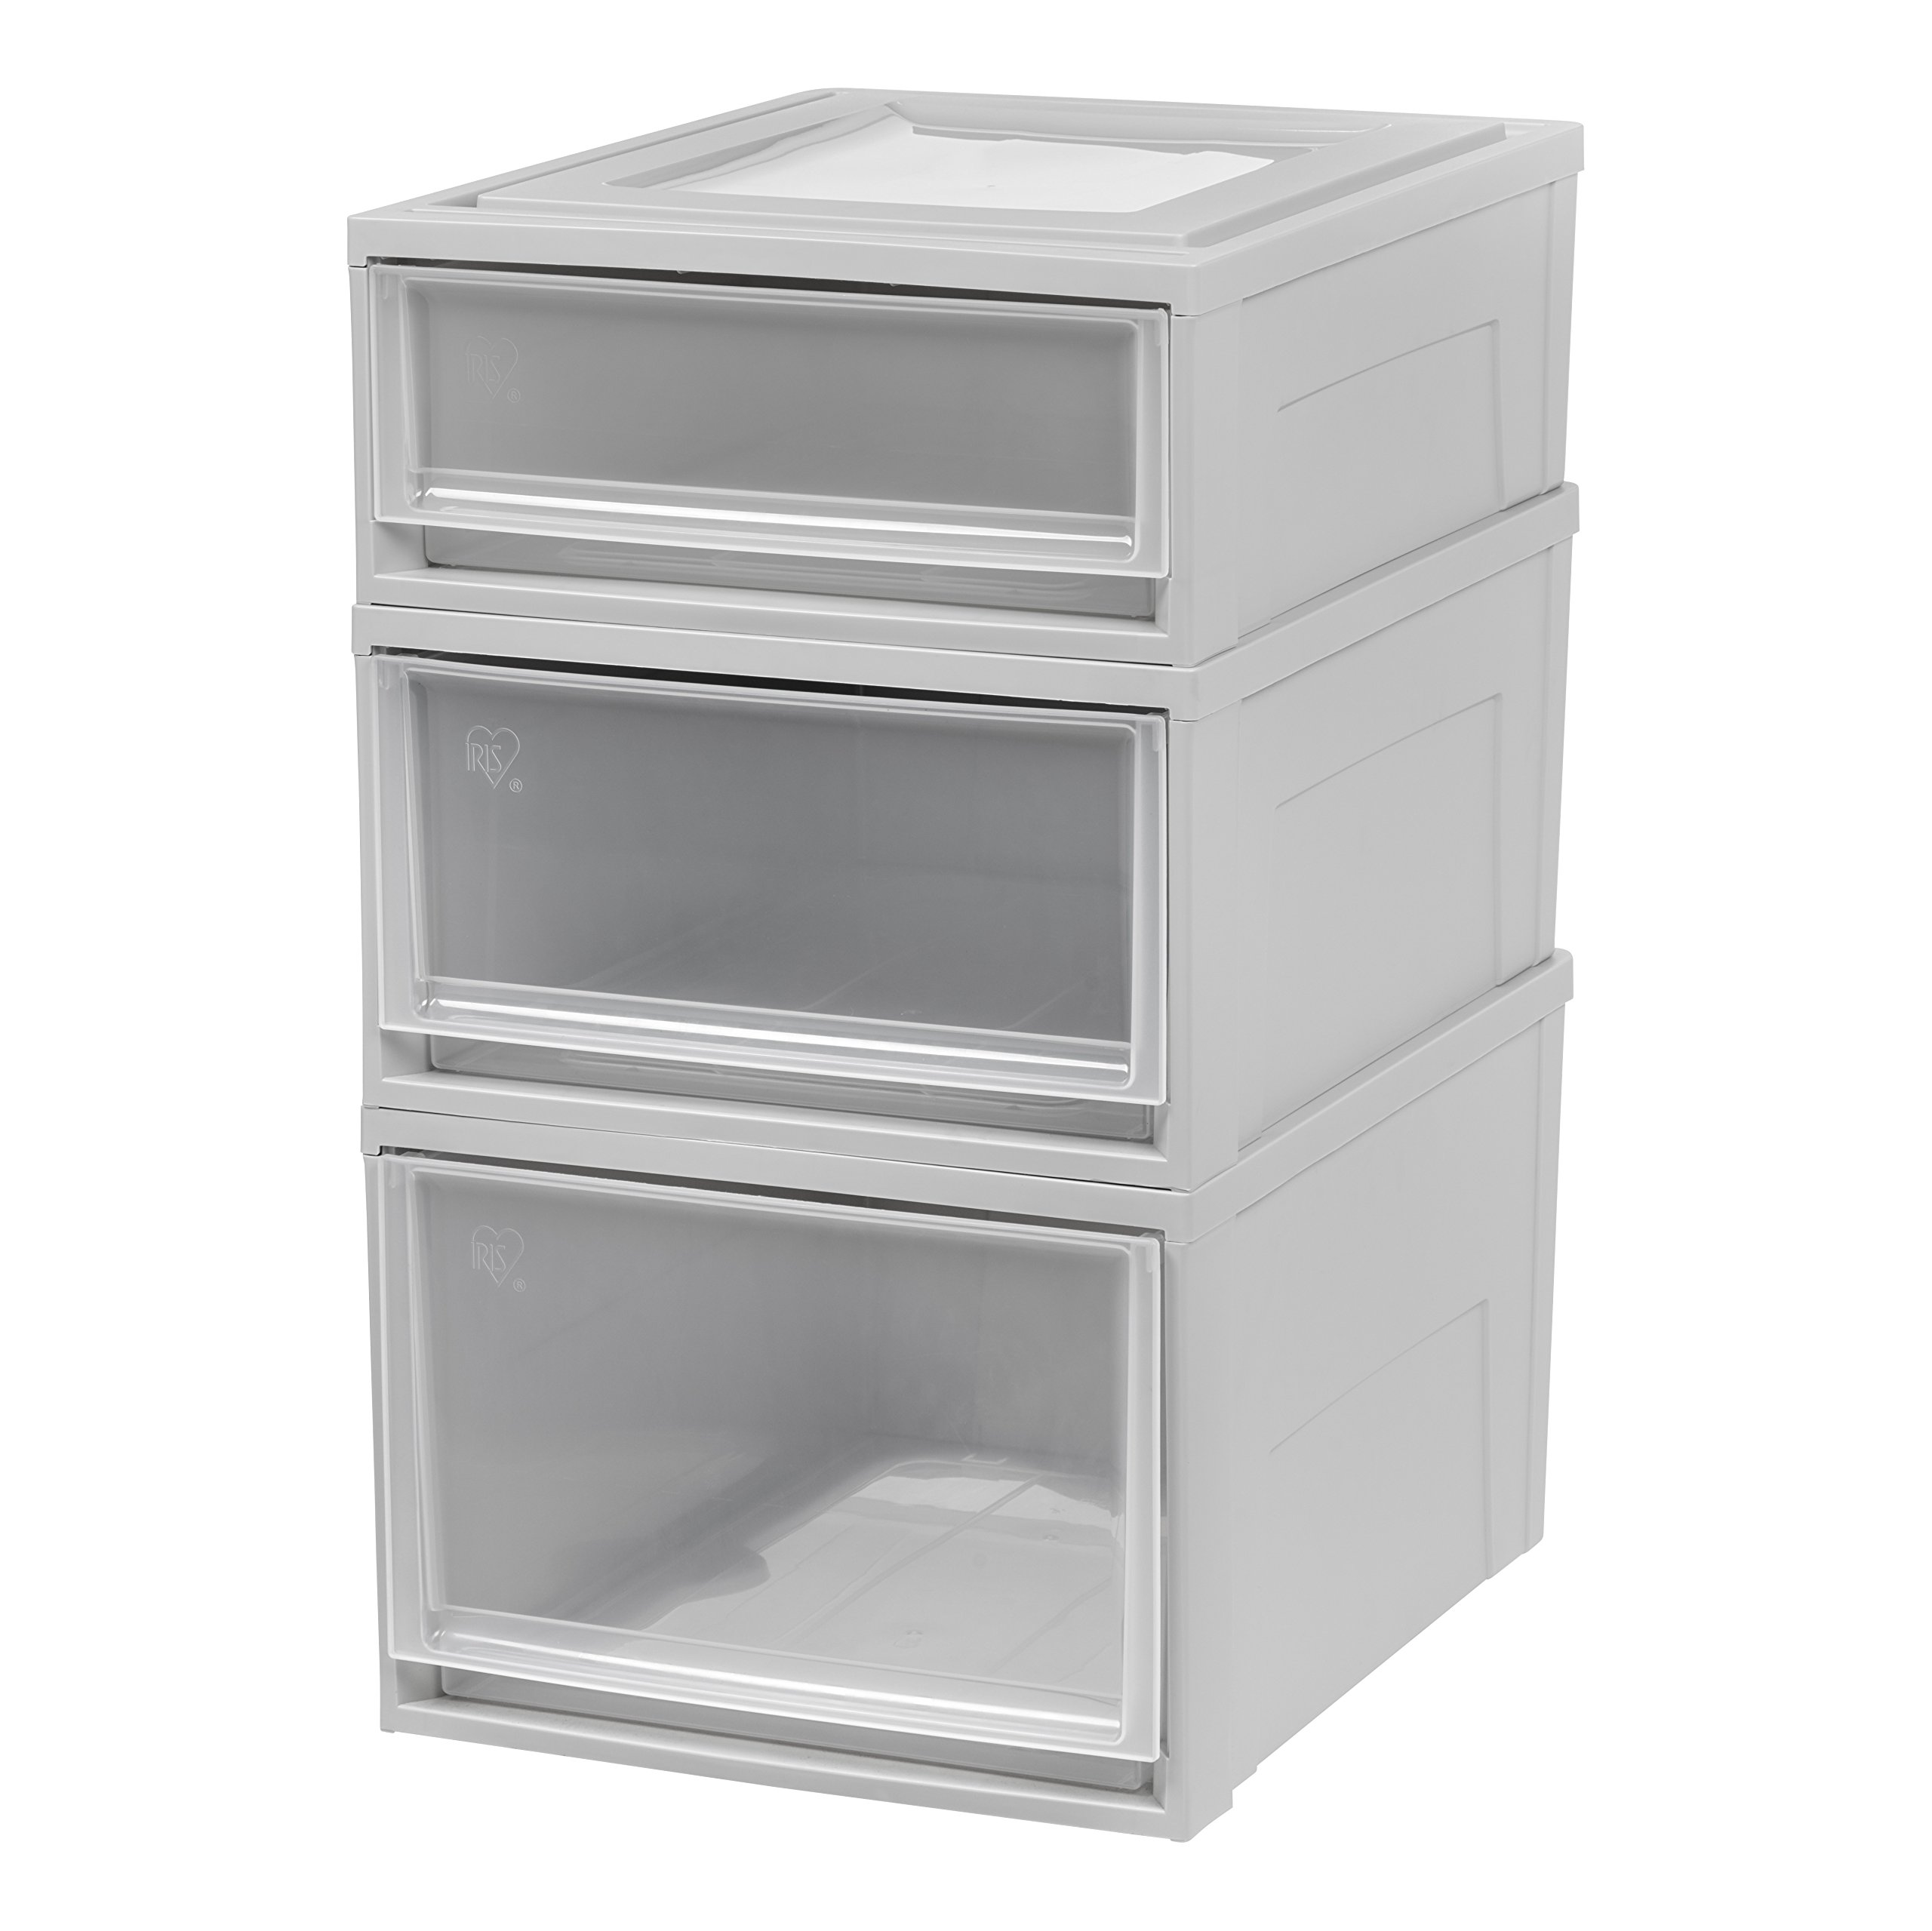 IRIS USA 591096, BC-500 Combo, Shallow, Medium, Deep Box Chest Drawer Set, Gray, 96 Quart by IRIS USA, Inc.